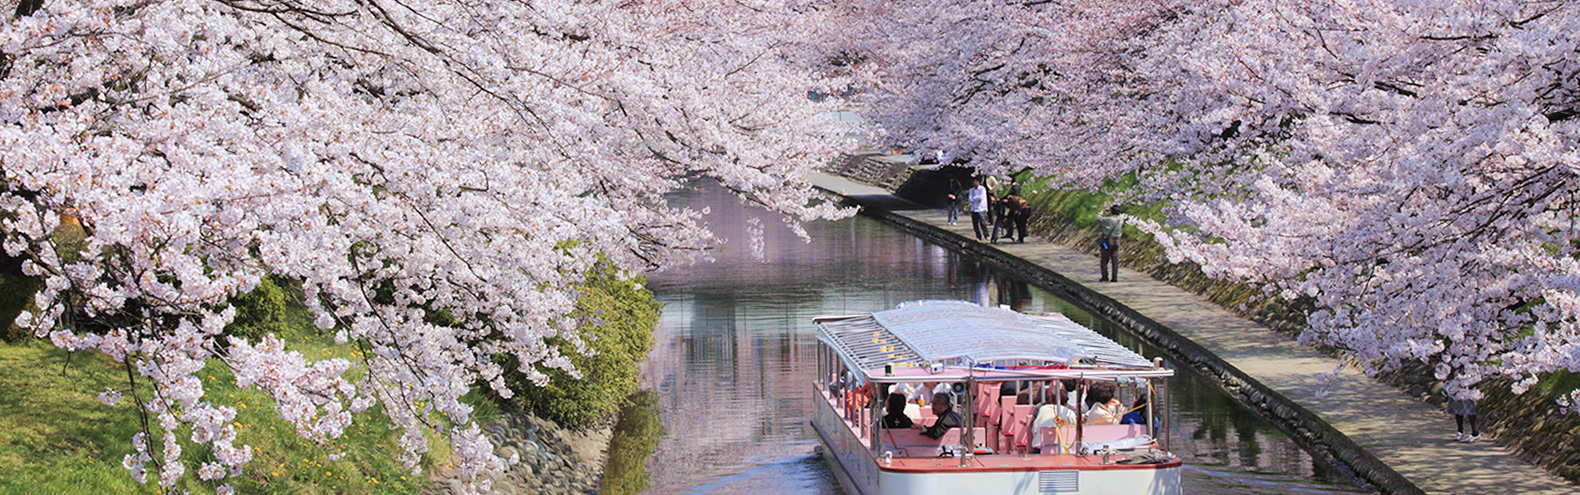 Hot spot for cherry blossoms - River side of Matsukawa River, centre of Toyama city